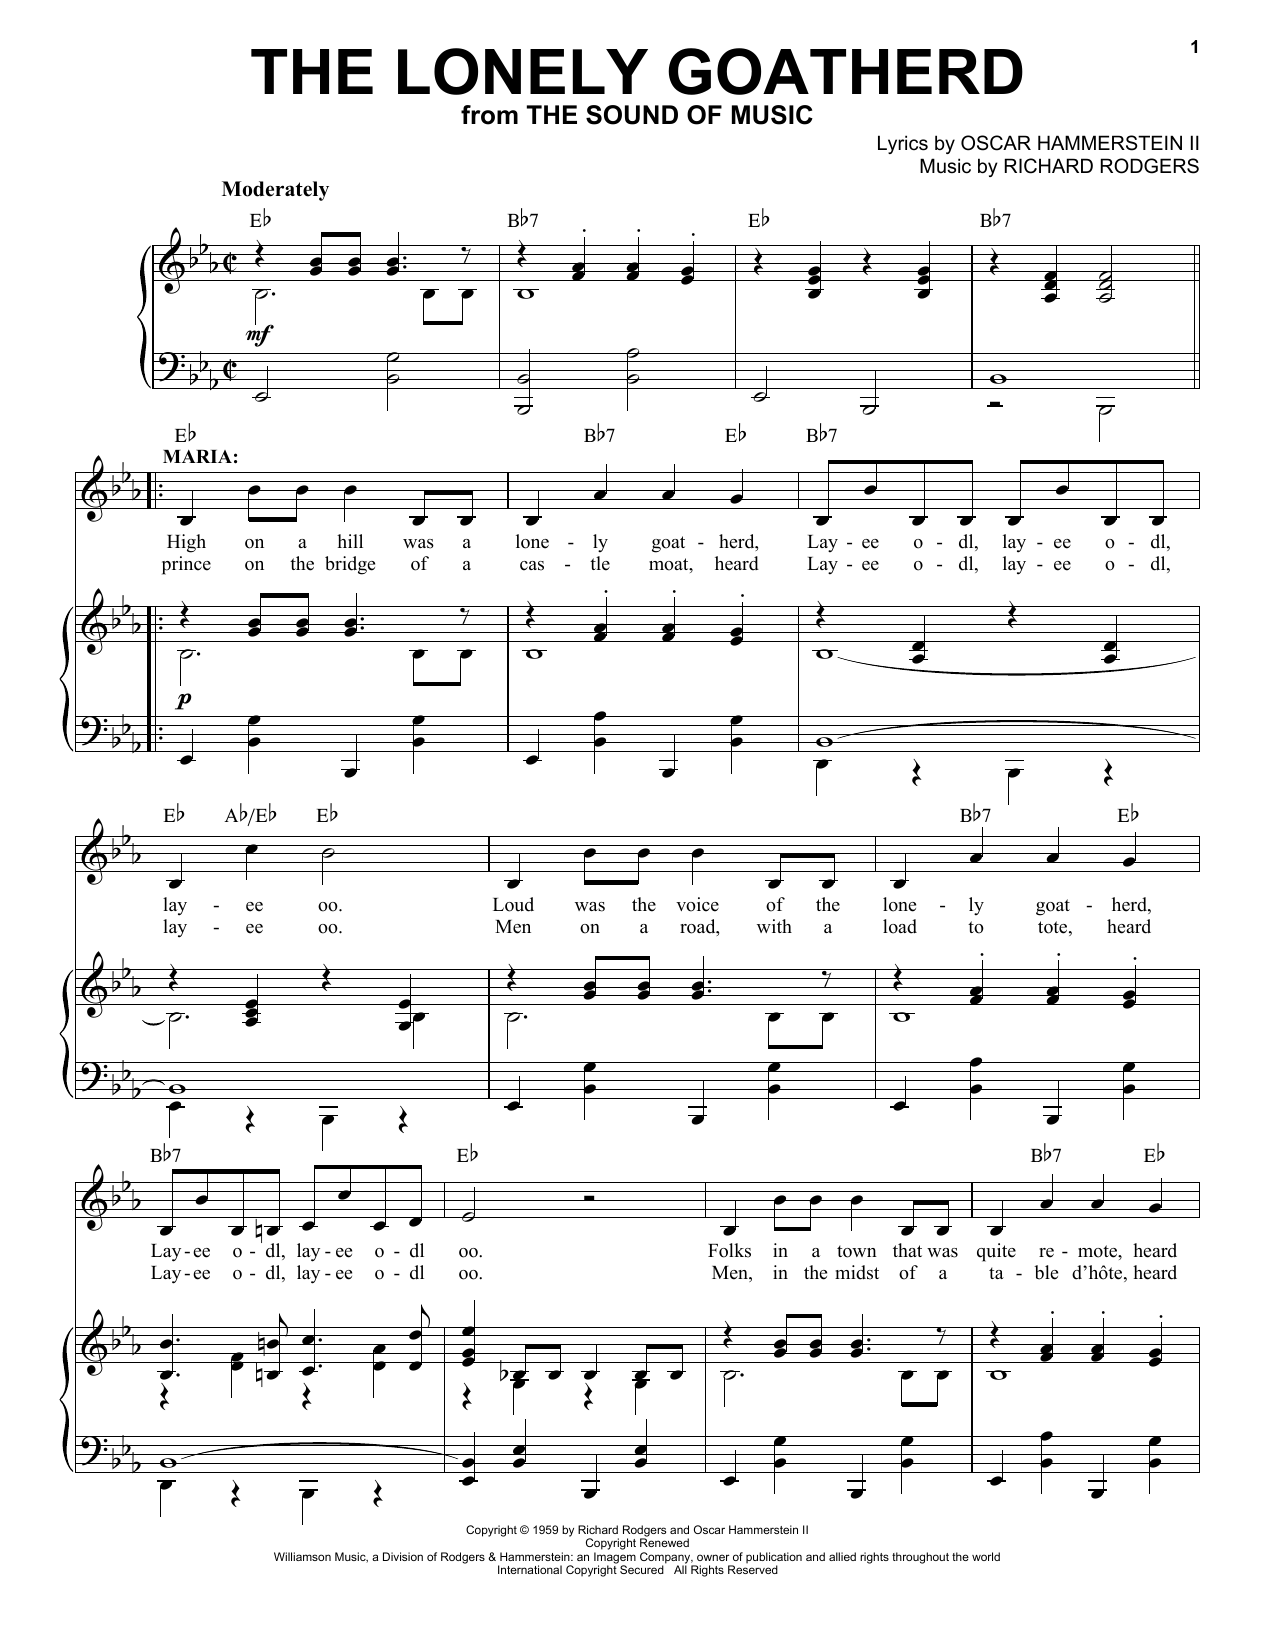 Rodgers & Hammerstein The Lonely Goatherd (from The Sound of Music) sheet music notes and chords